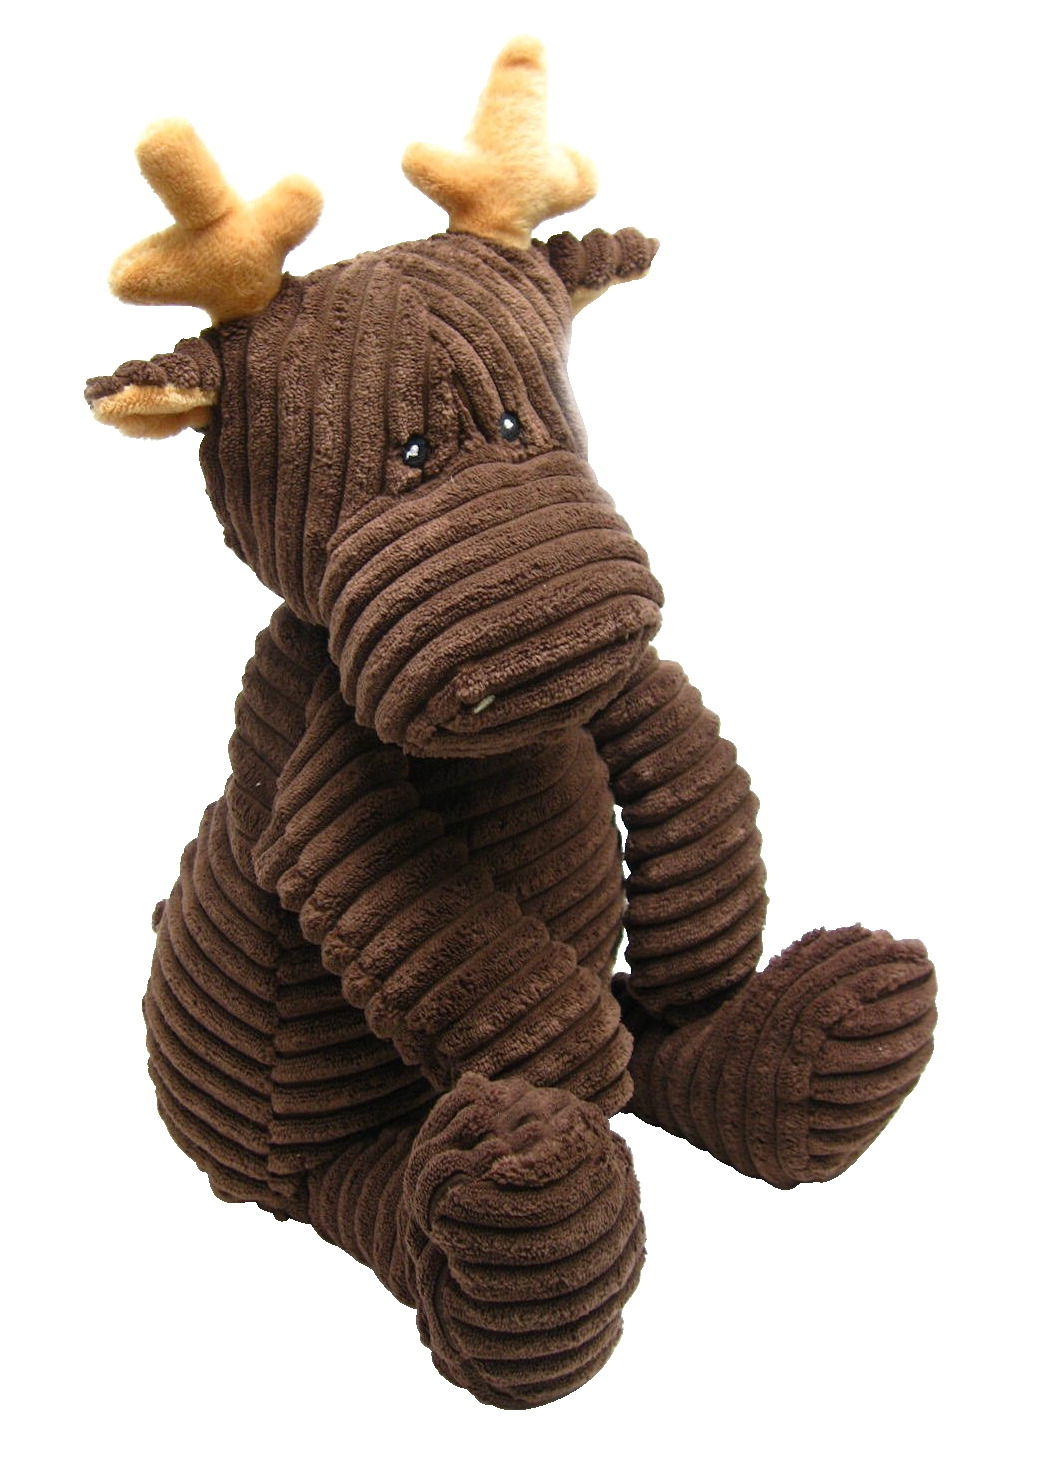 Special Needs Sensory Processing Multi Sensory - 1577259 - Abilitations Weighted Kordy Moose; Sensory Solution; 3 Pounds 1577259